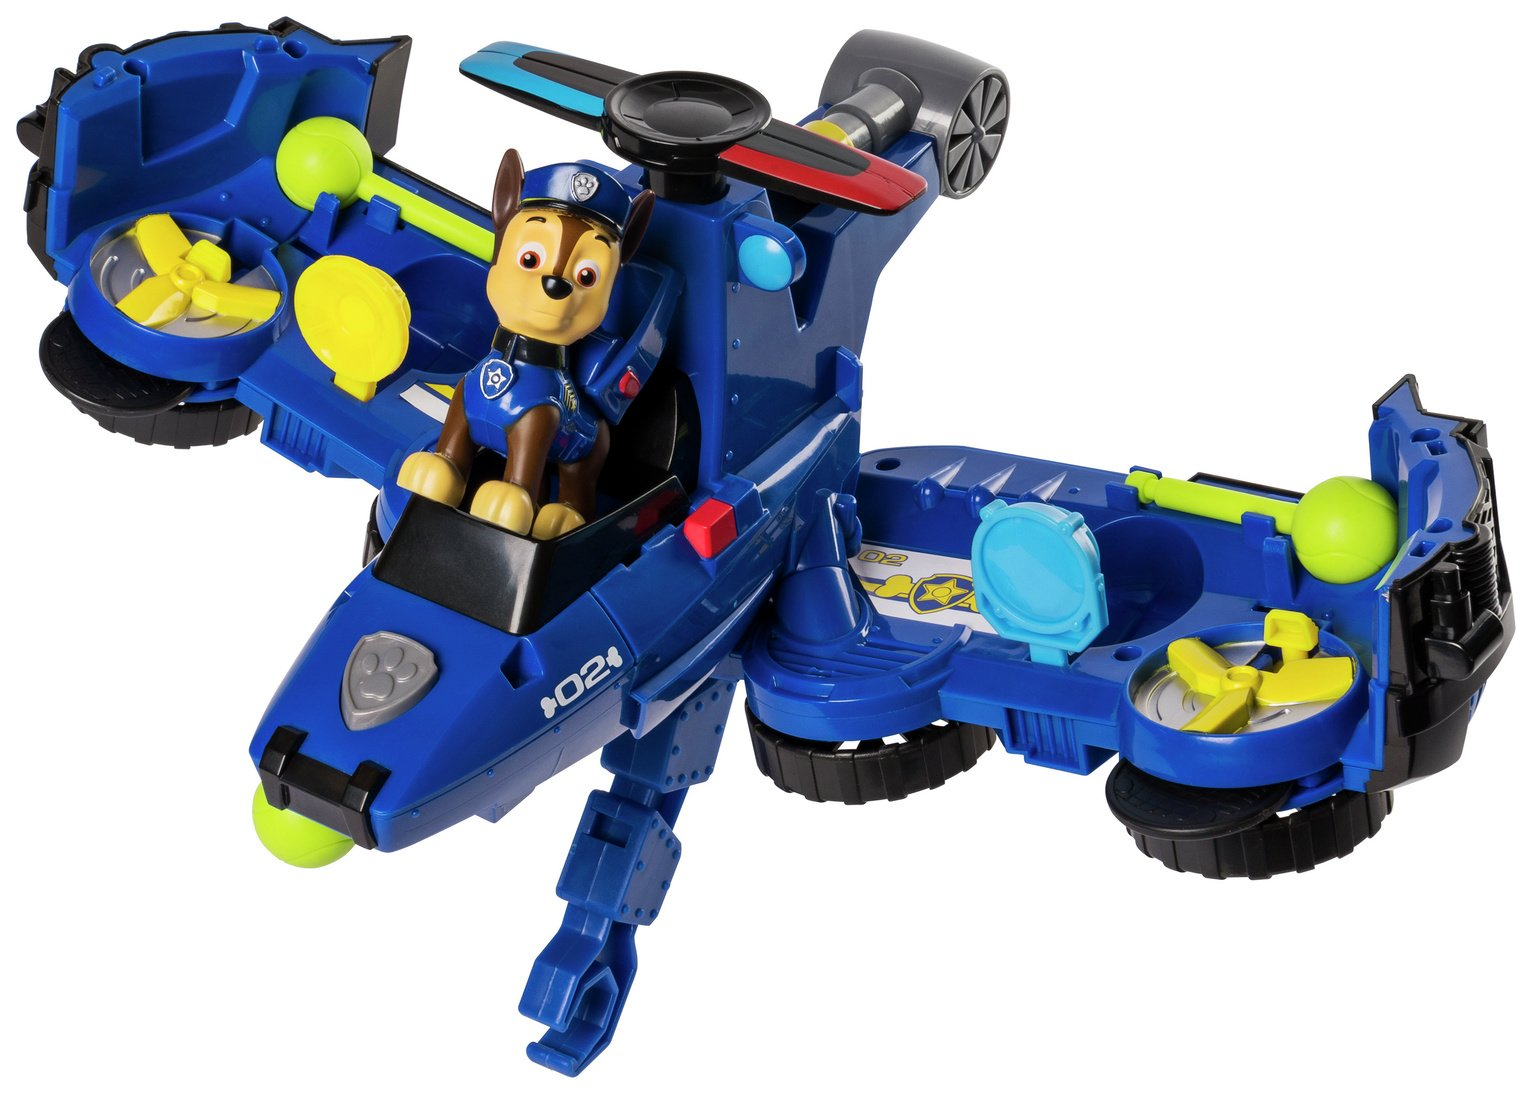 PAW Patrol Chase Flip & Fly Transforming Vehicle from PAW Patrol